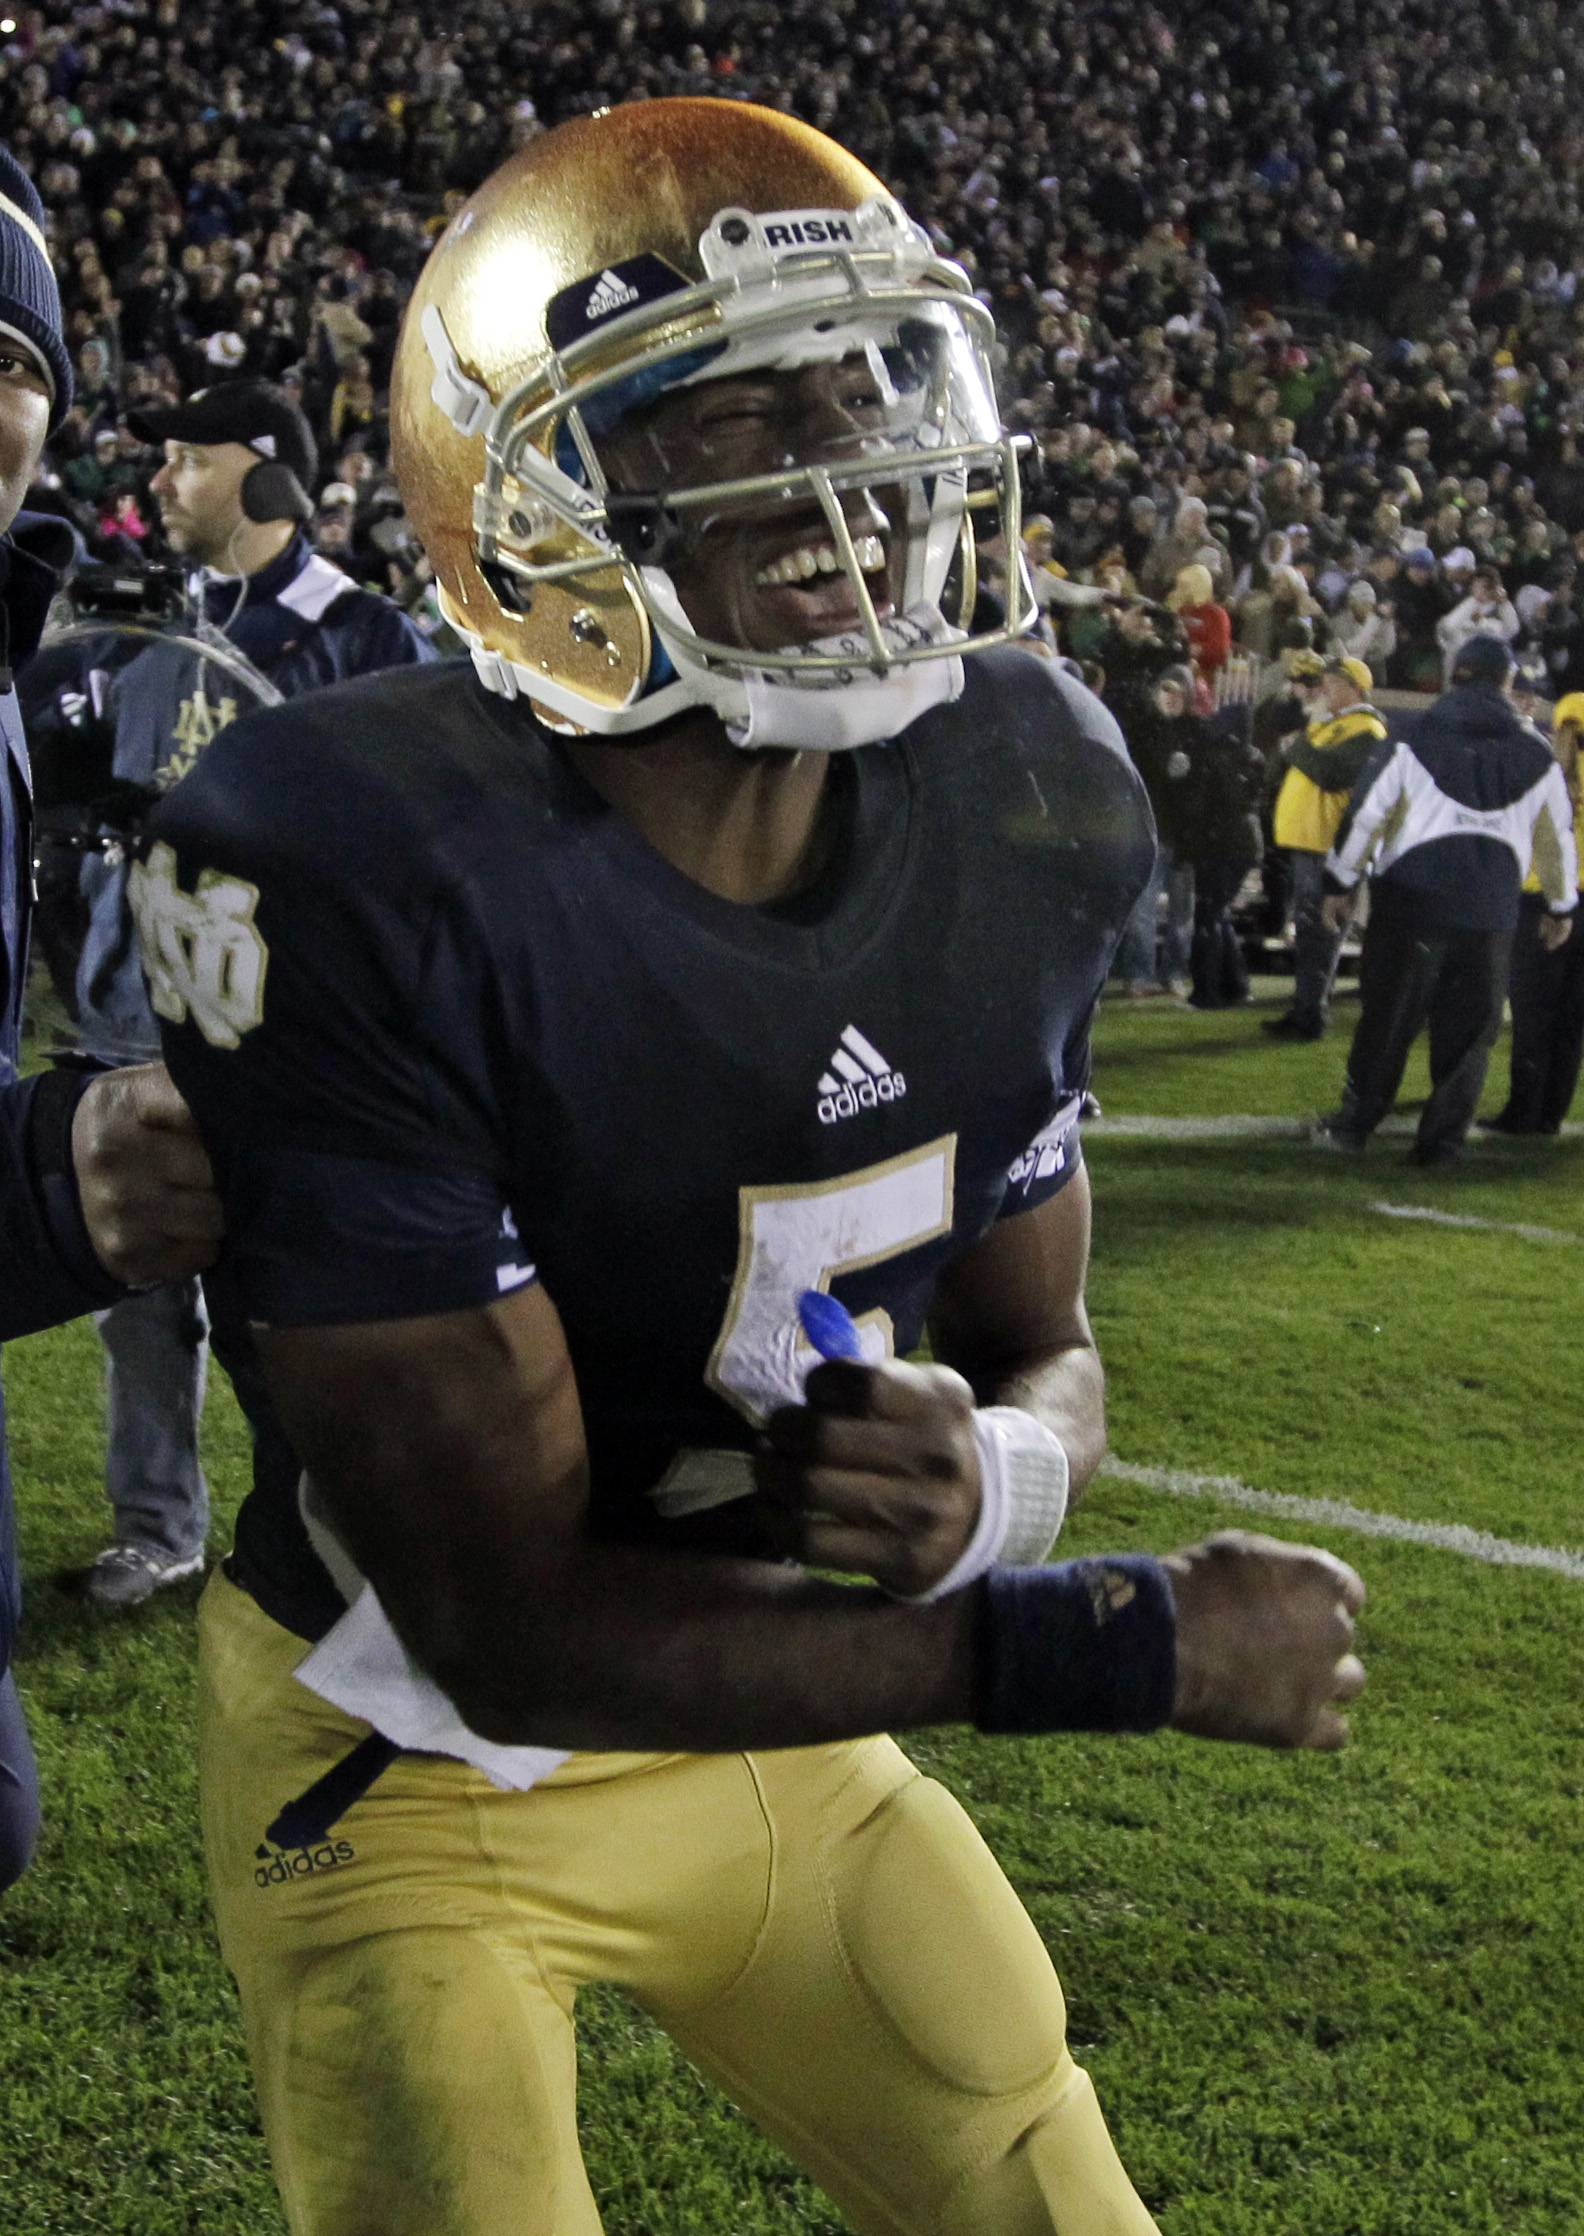 Notre Dame quarterback Everett Golson celebrates Saturday after scoring the game-winning touchdown in the third overtime against Pittsburgh in South Bend, Ind. The Irish defeated Pittsburgh 29-26 in triple overtime.